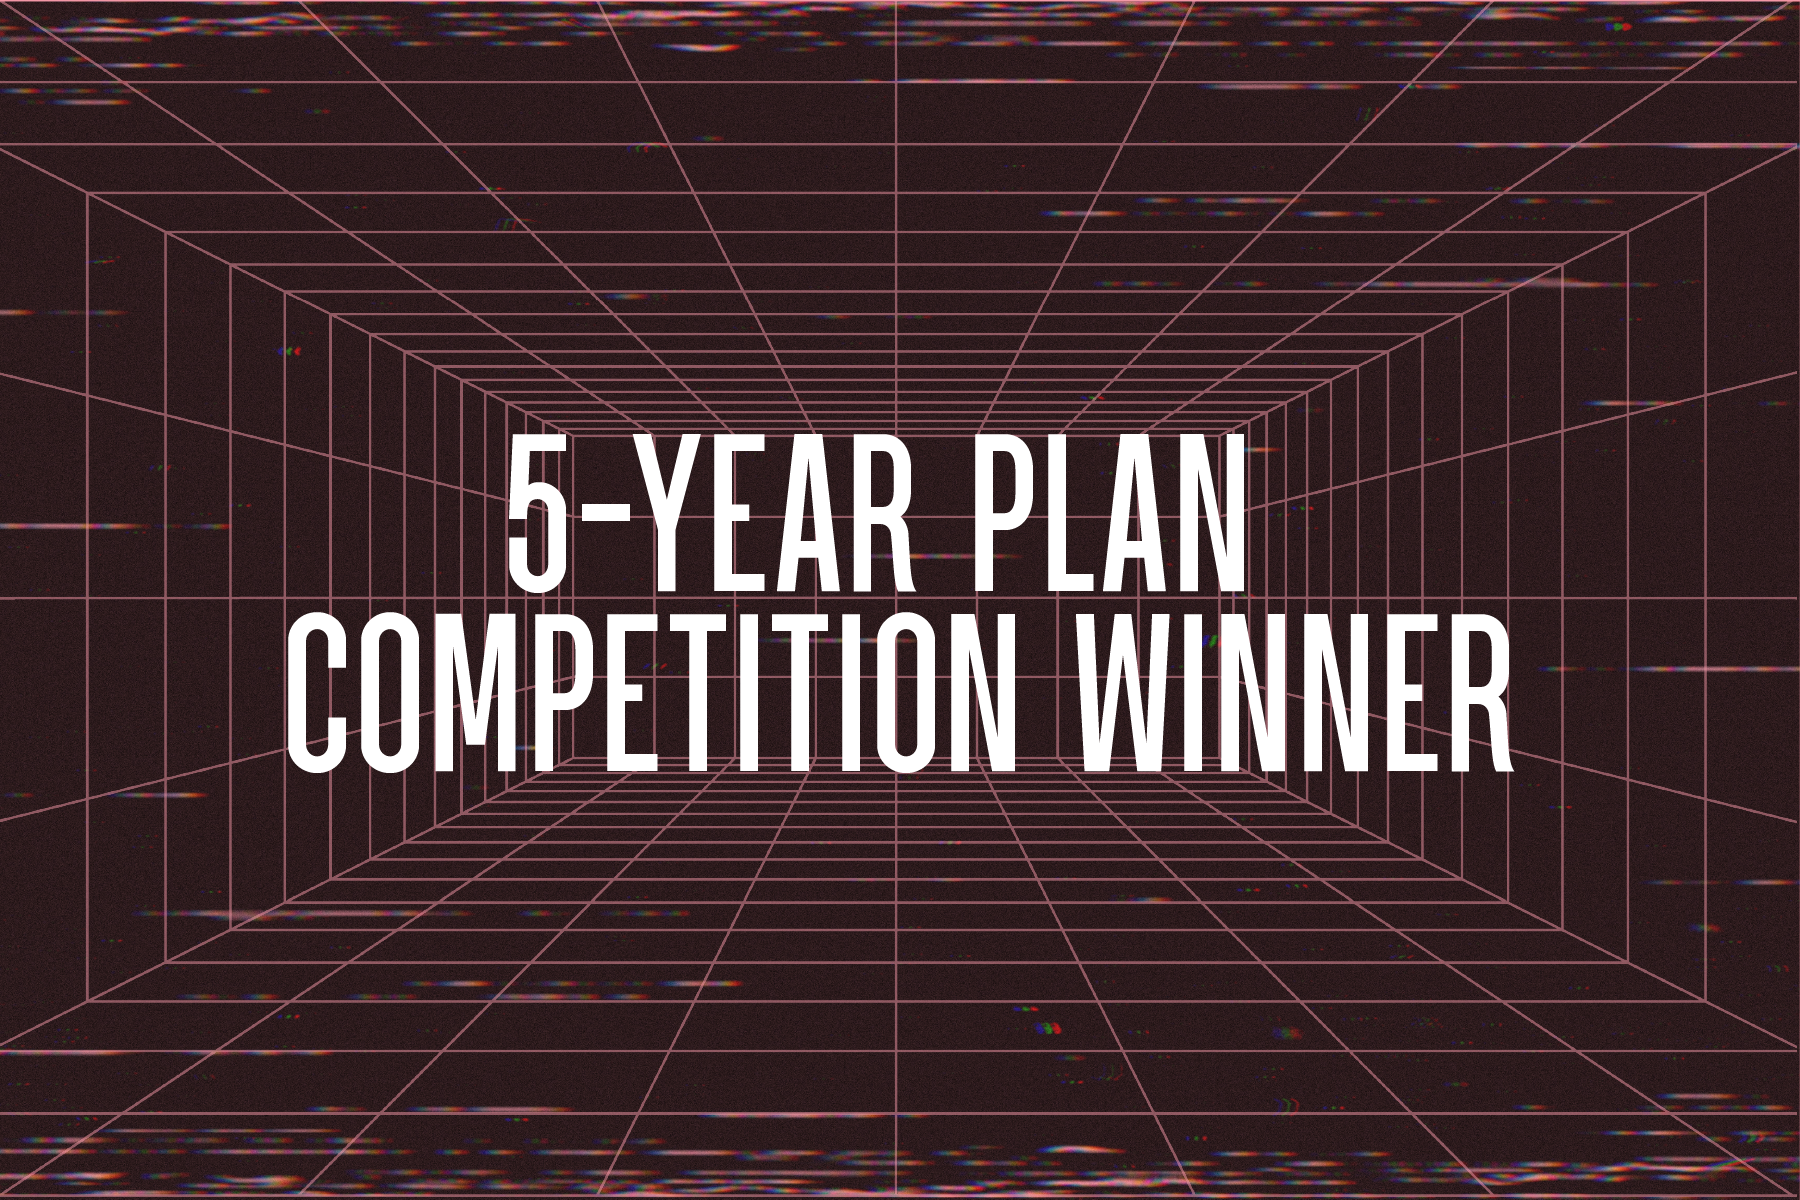 5-Year Plan Competition Winner